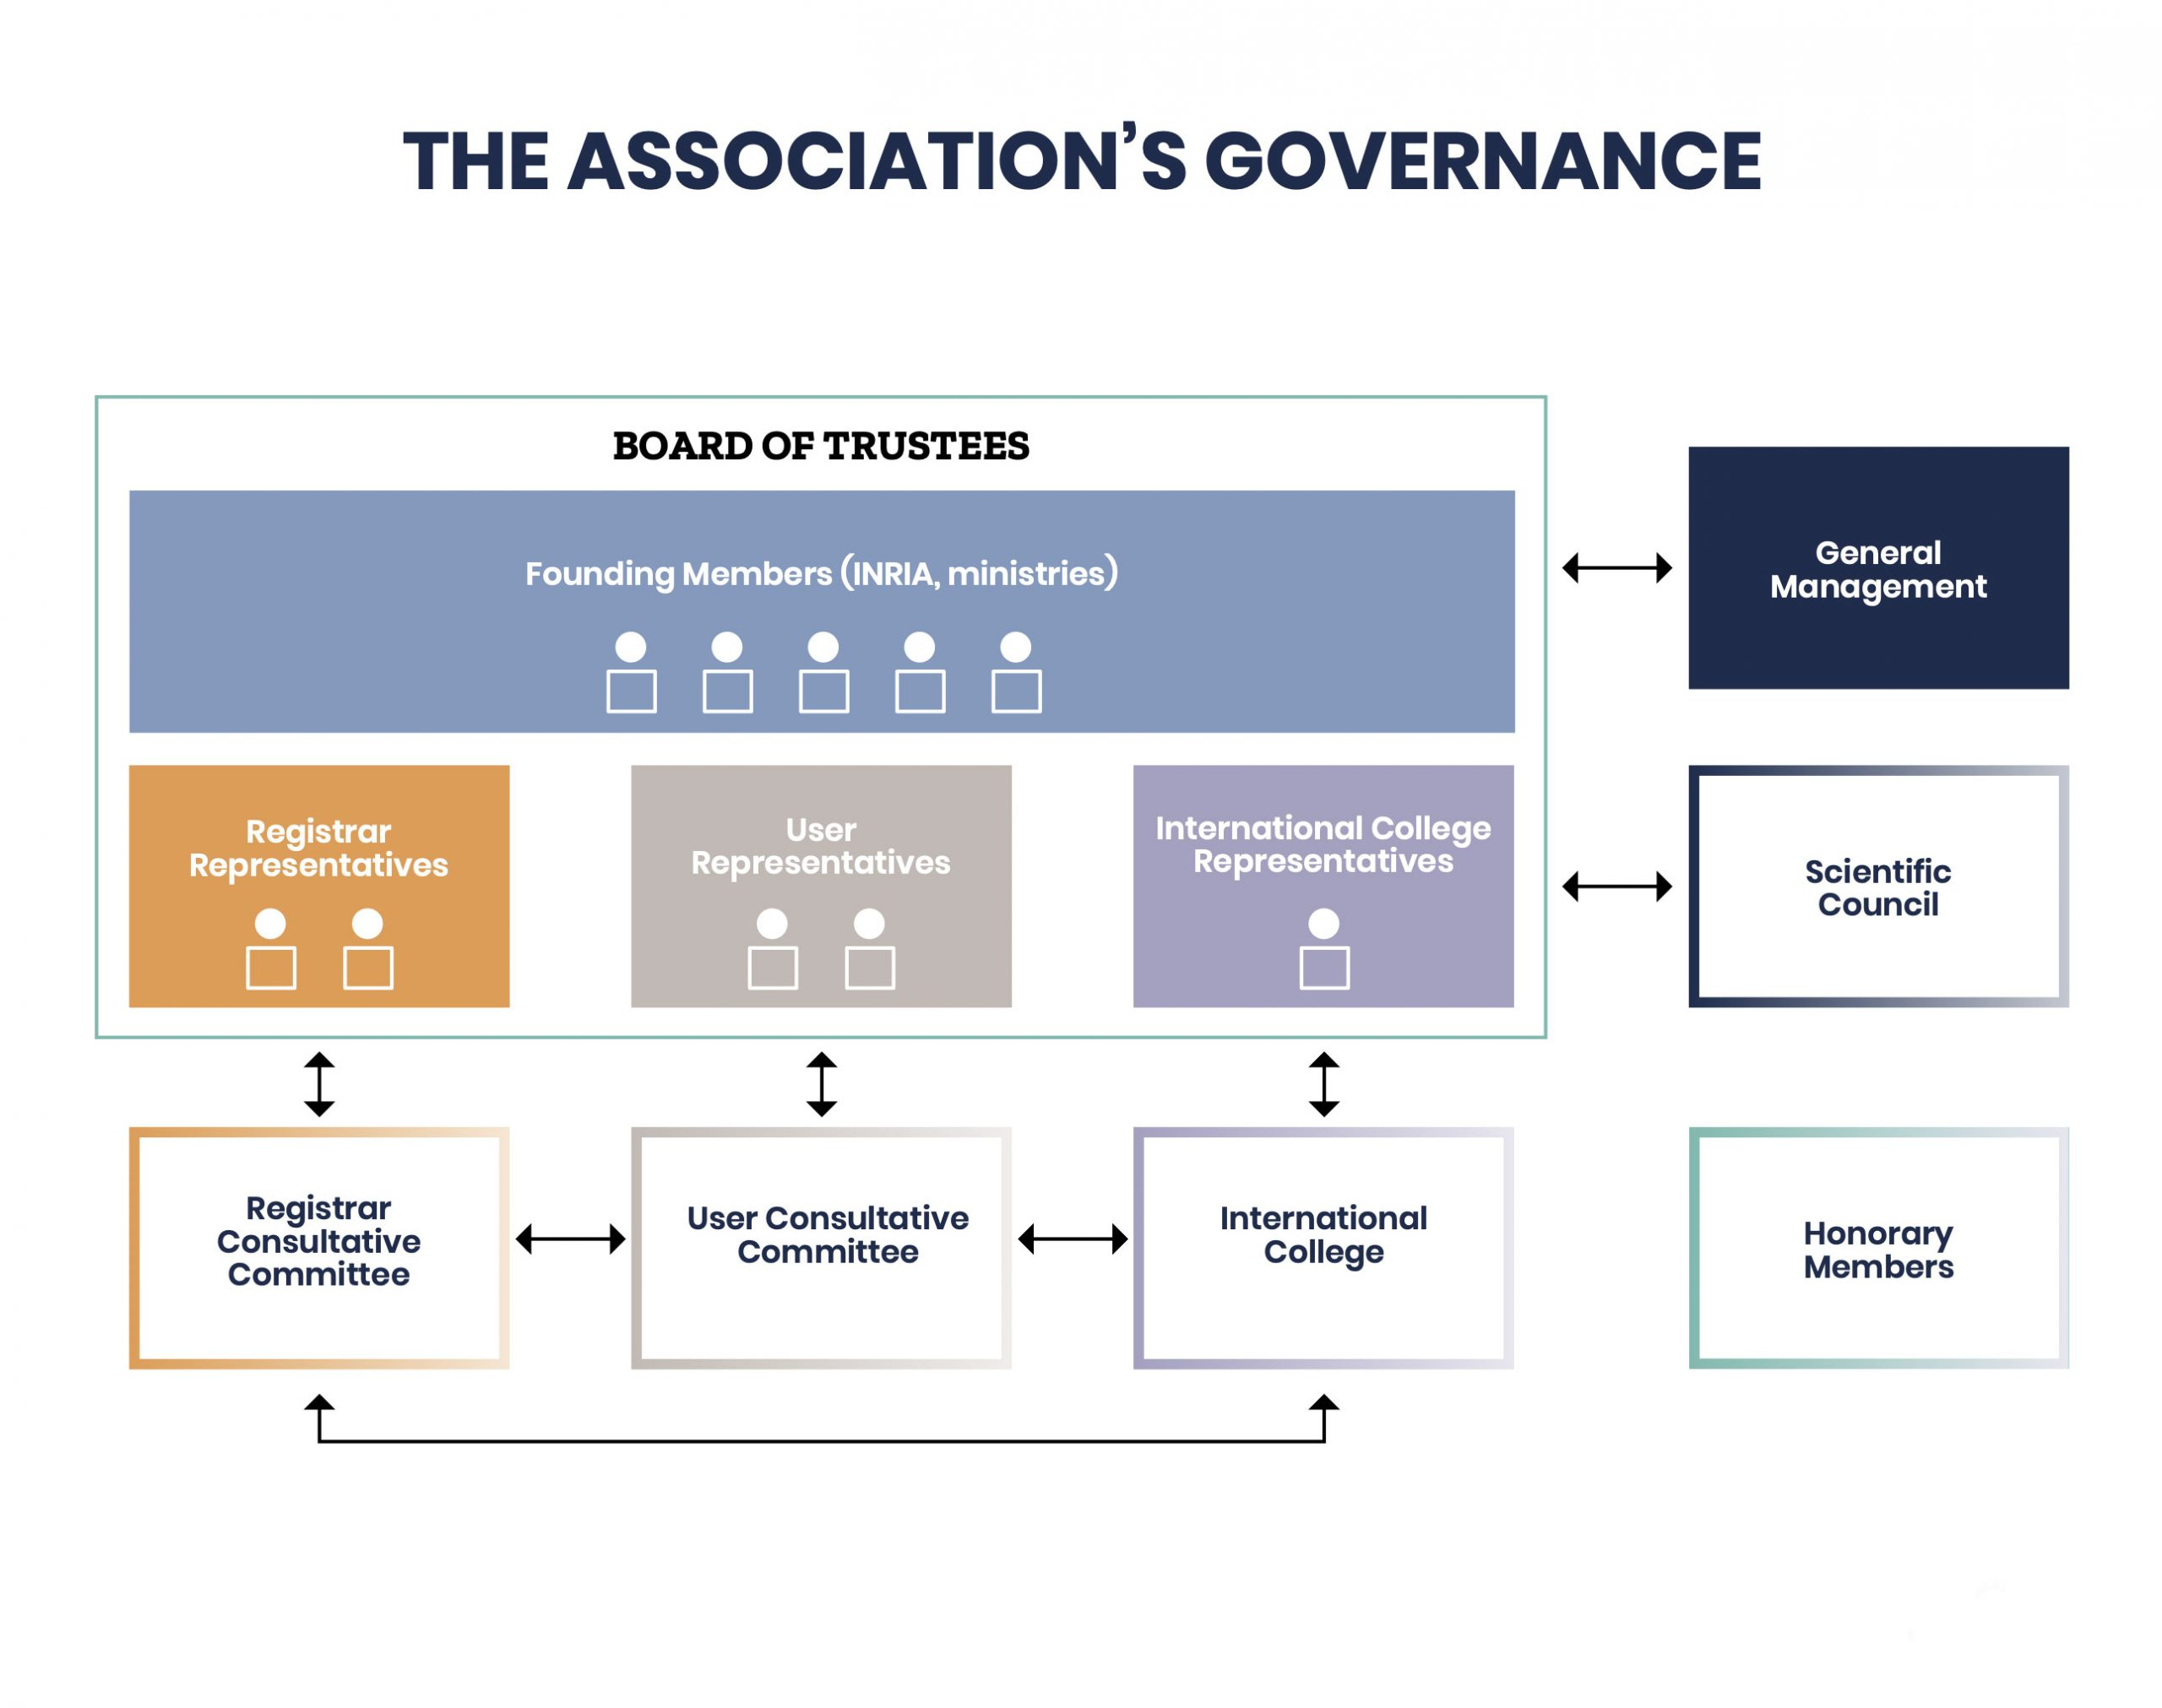 The association's governance